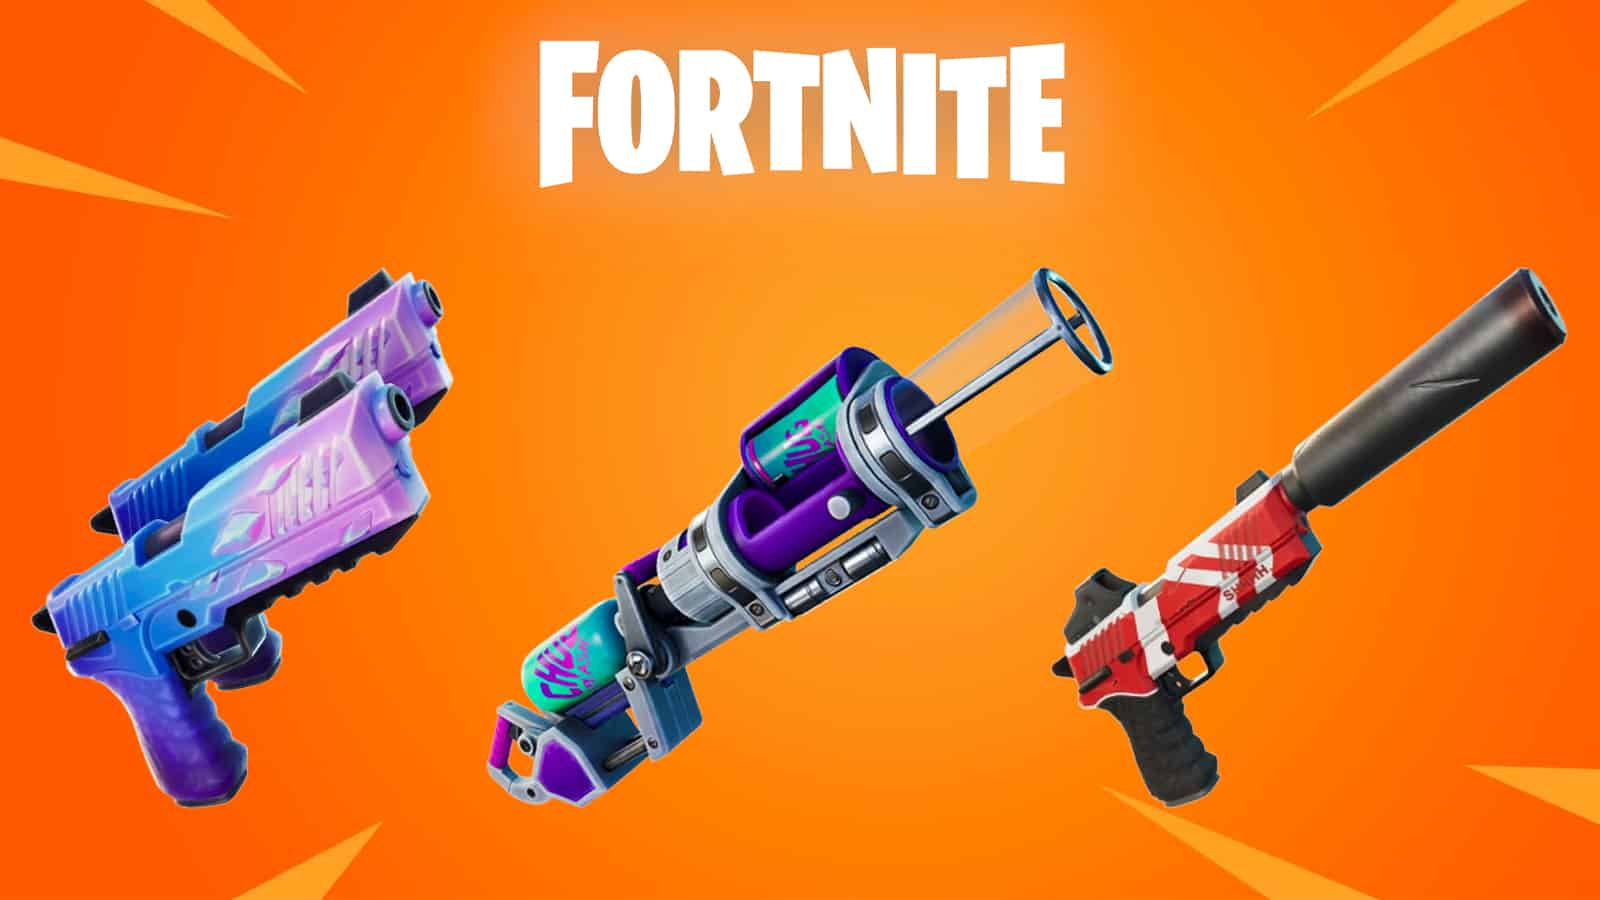 Fortnite Exotic Weapons